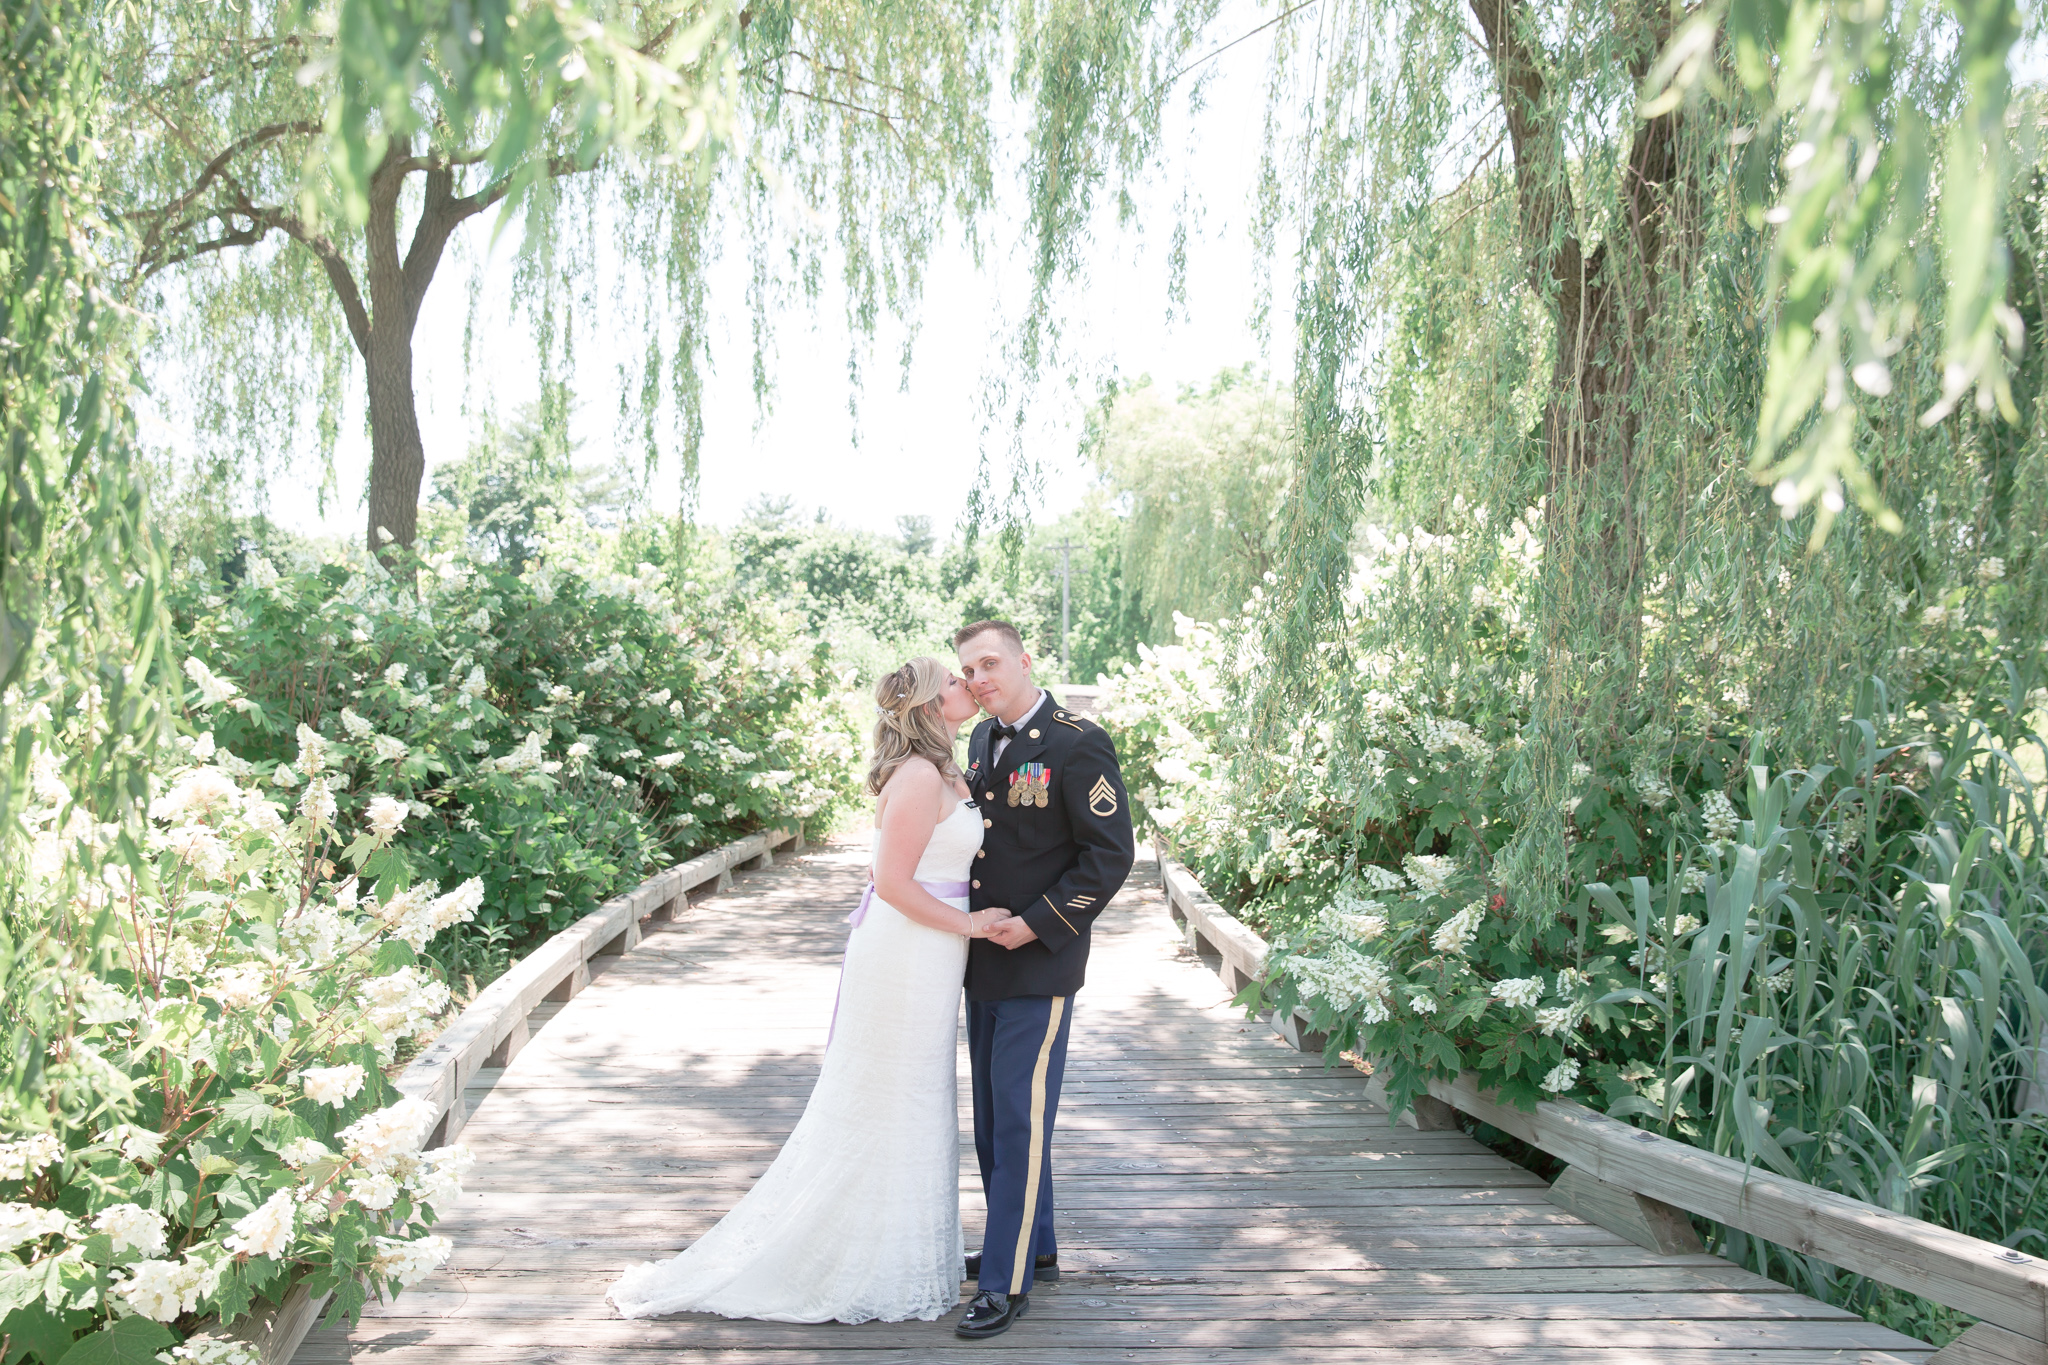 Probably one of my favorite locations this year. The trees framing this shot are truly amazing! Plus everyone loves a guy in uniform! ;)